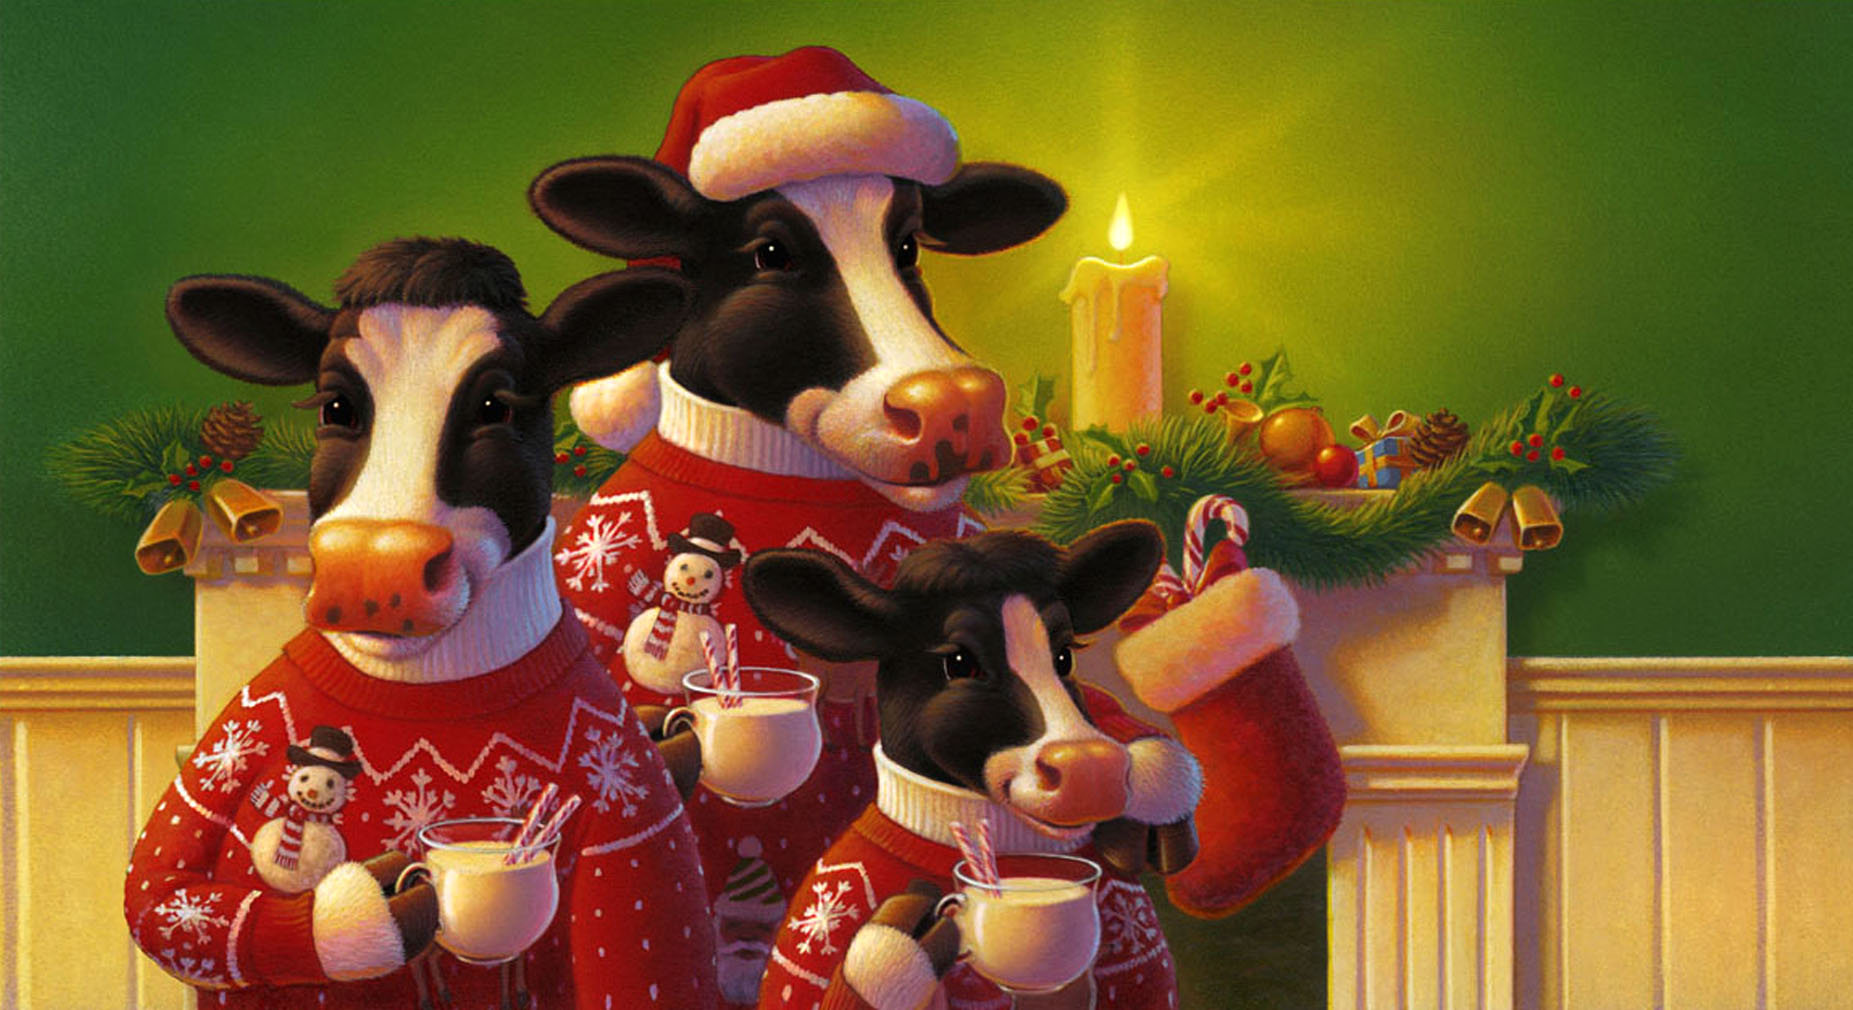 lelandklanderman-holidaycows .jpg